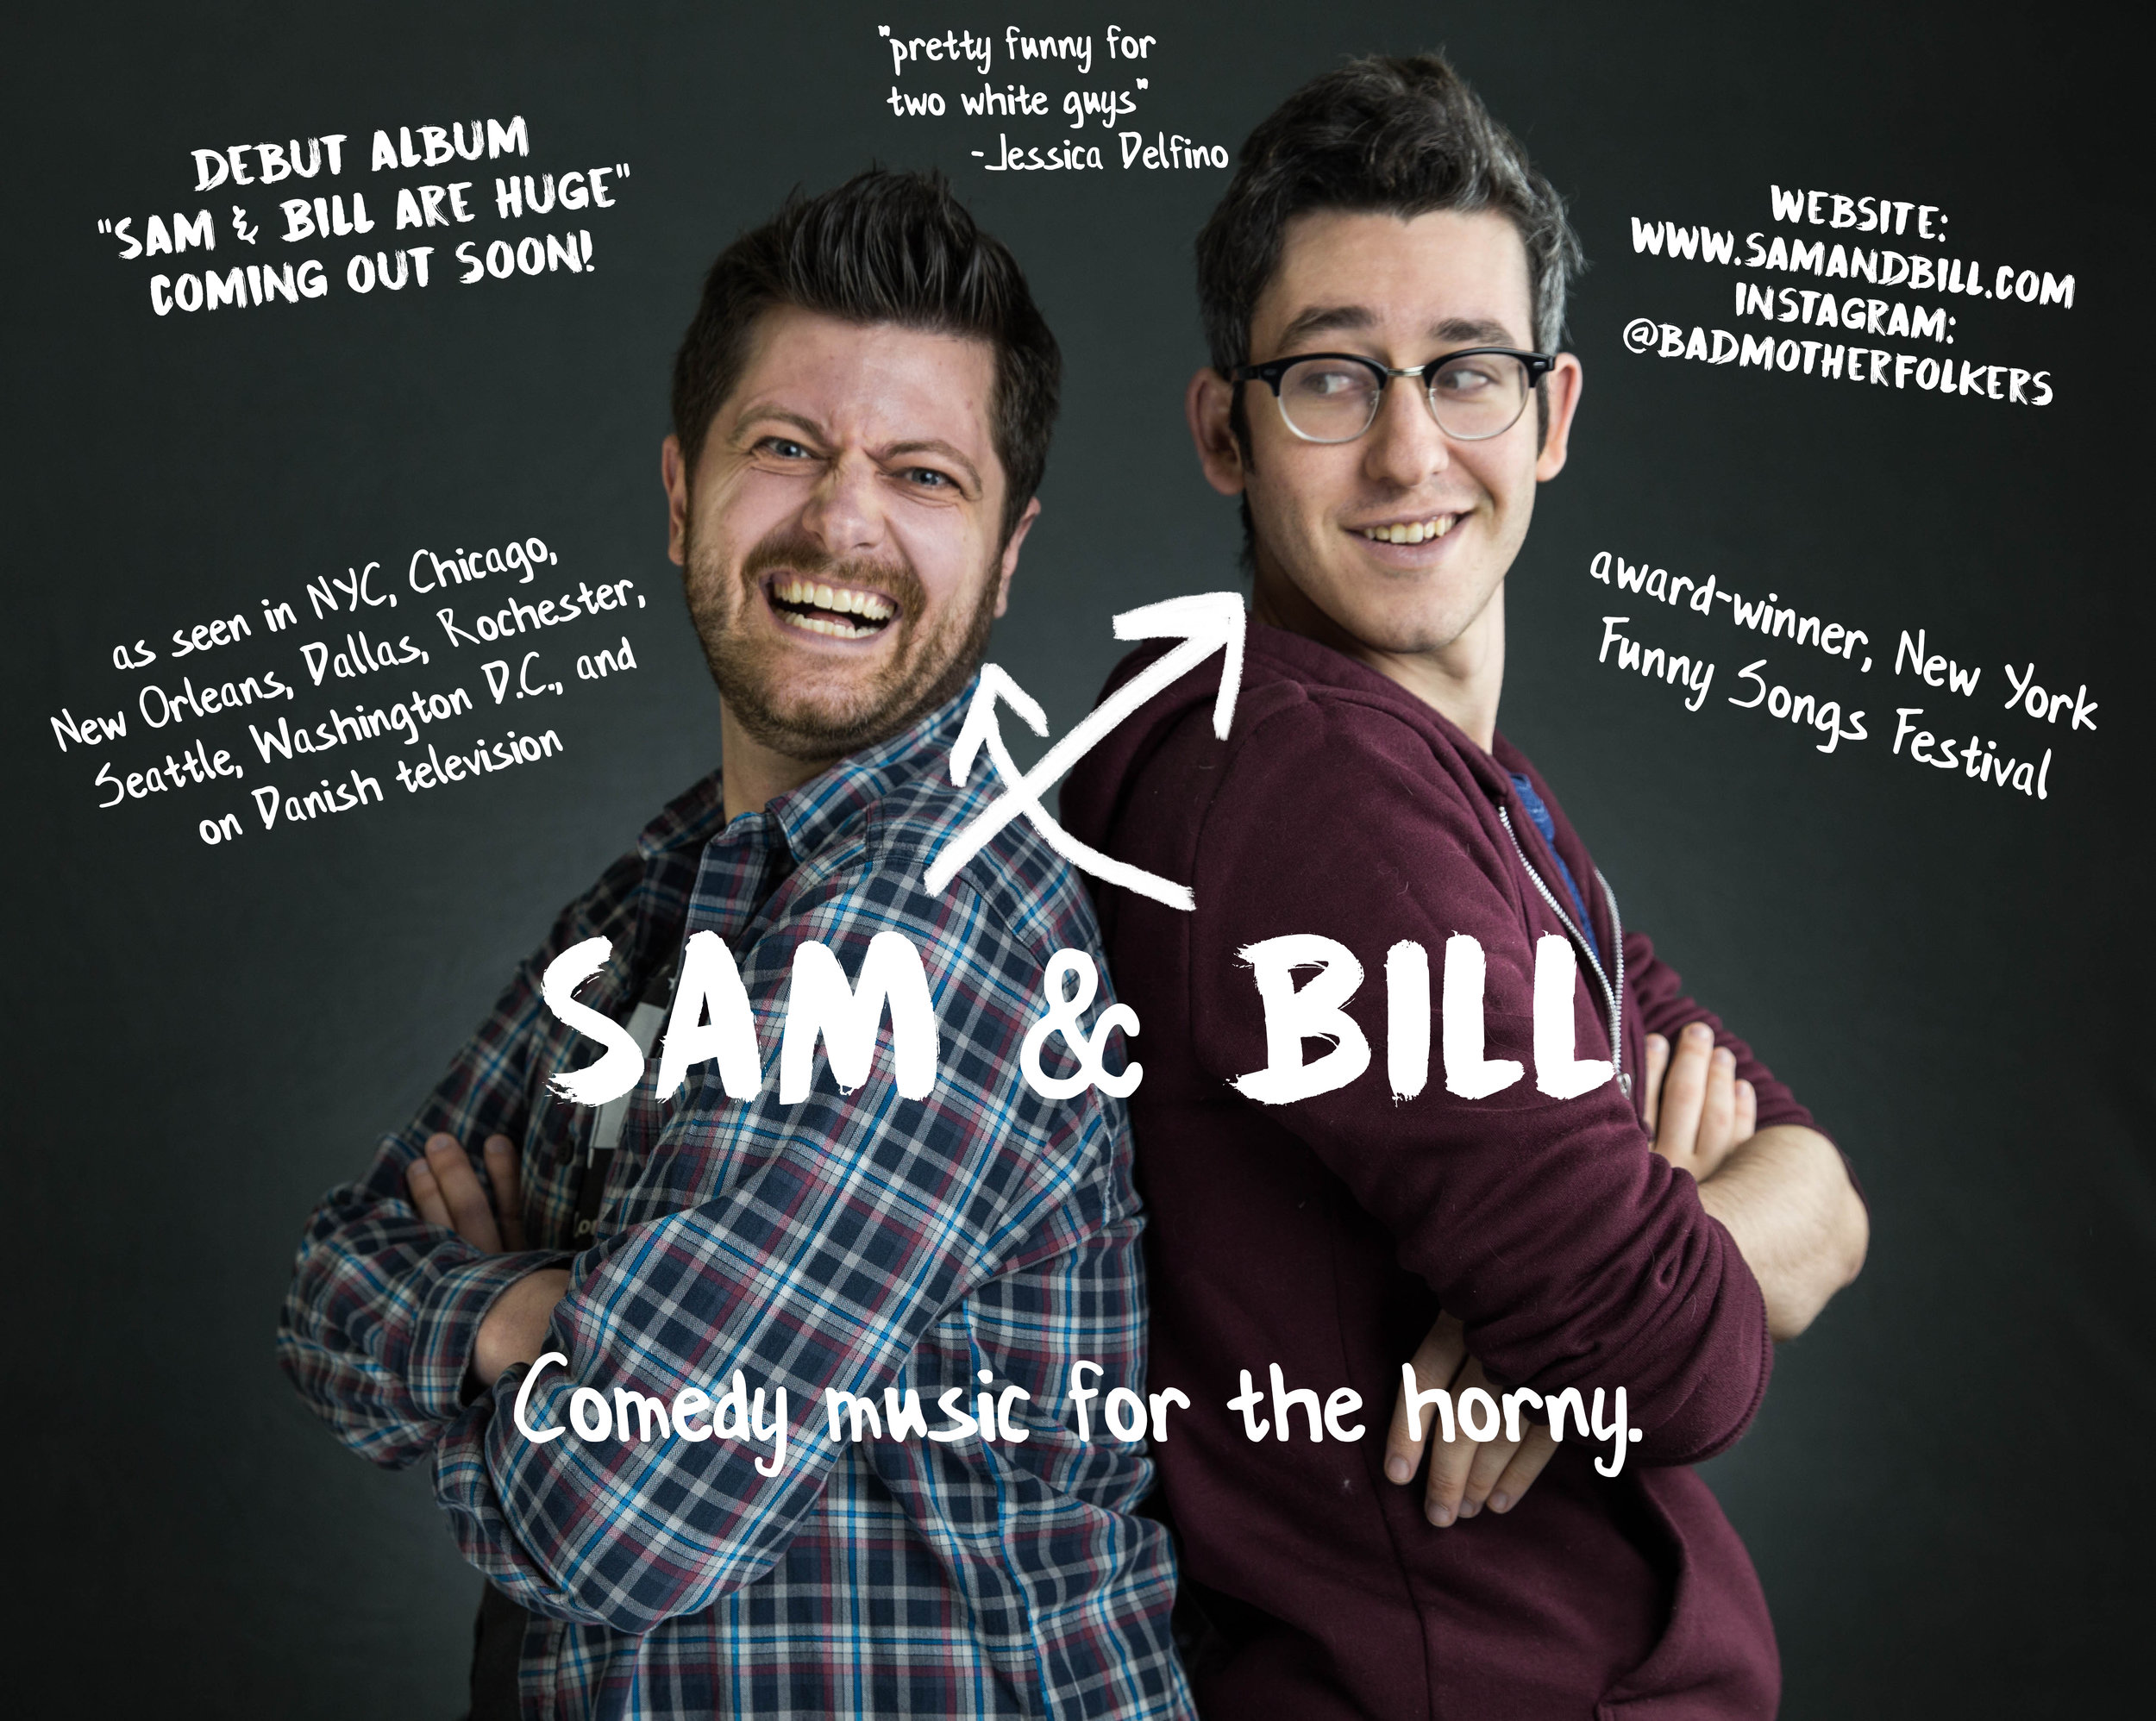 sam and bill banner3.jpg